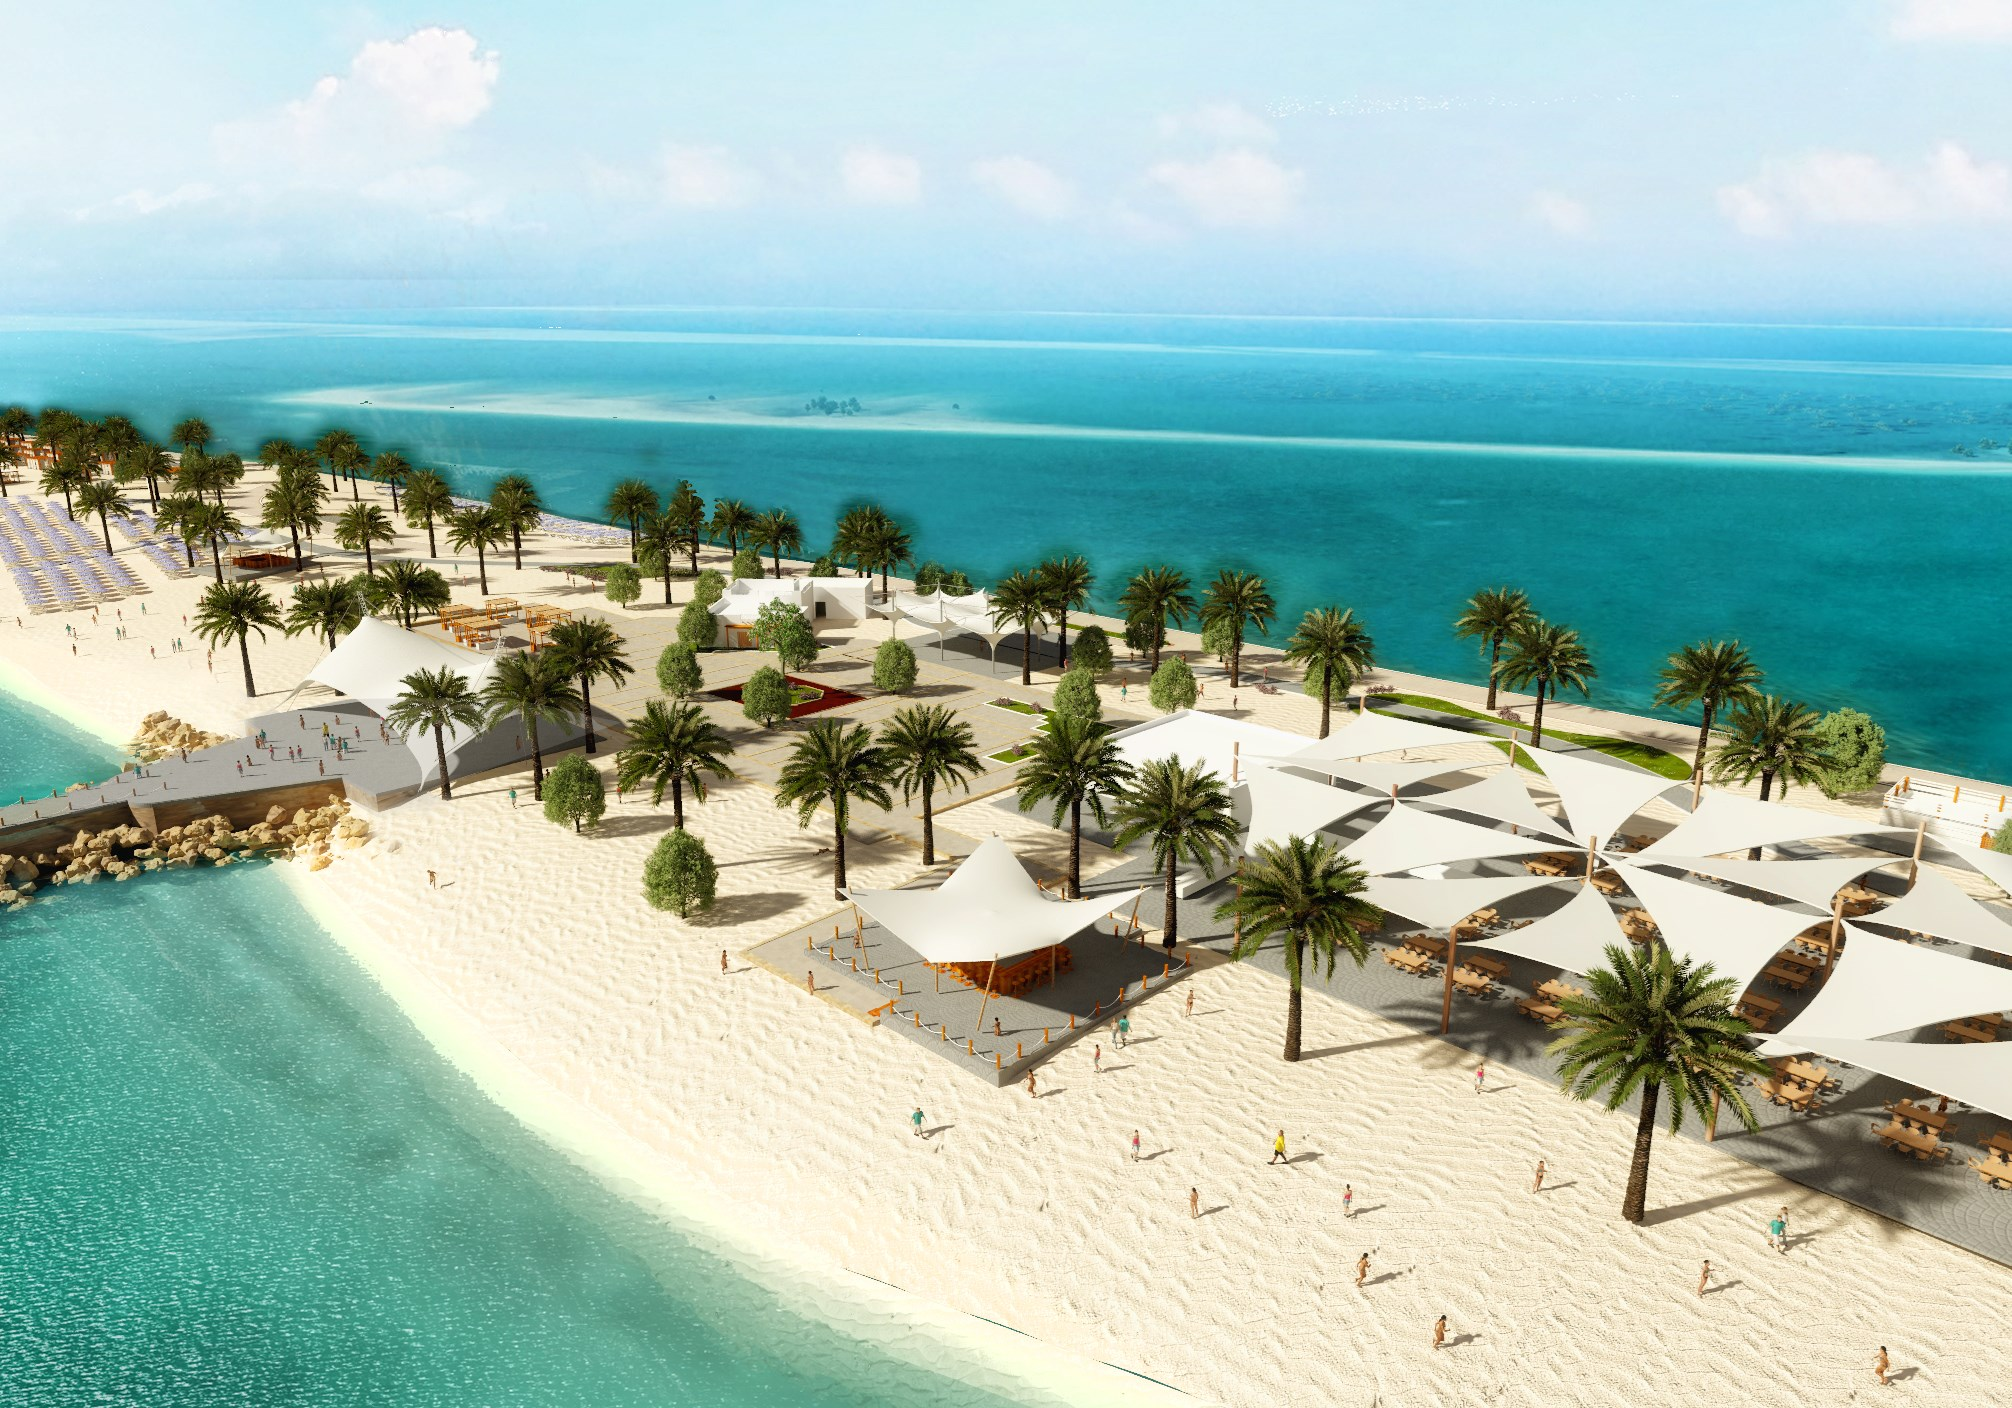 MSC cruises introduceert Sir Bani Yas eiland